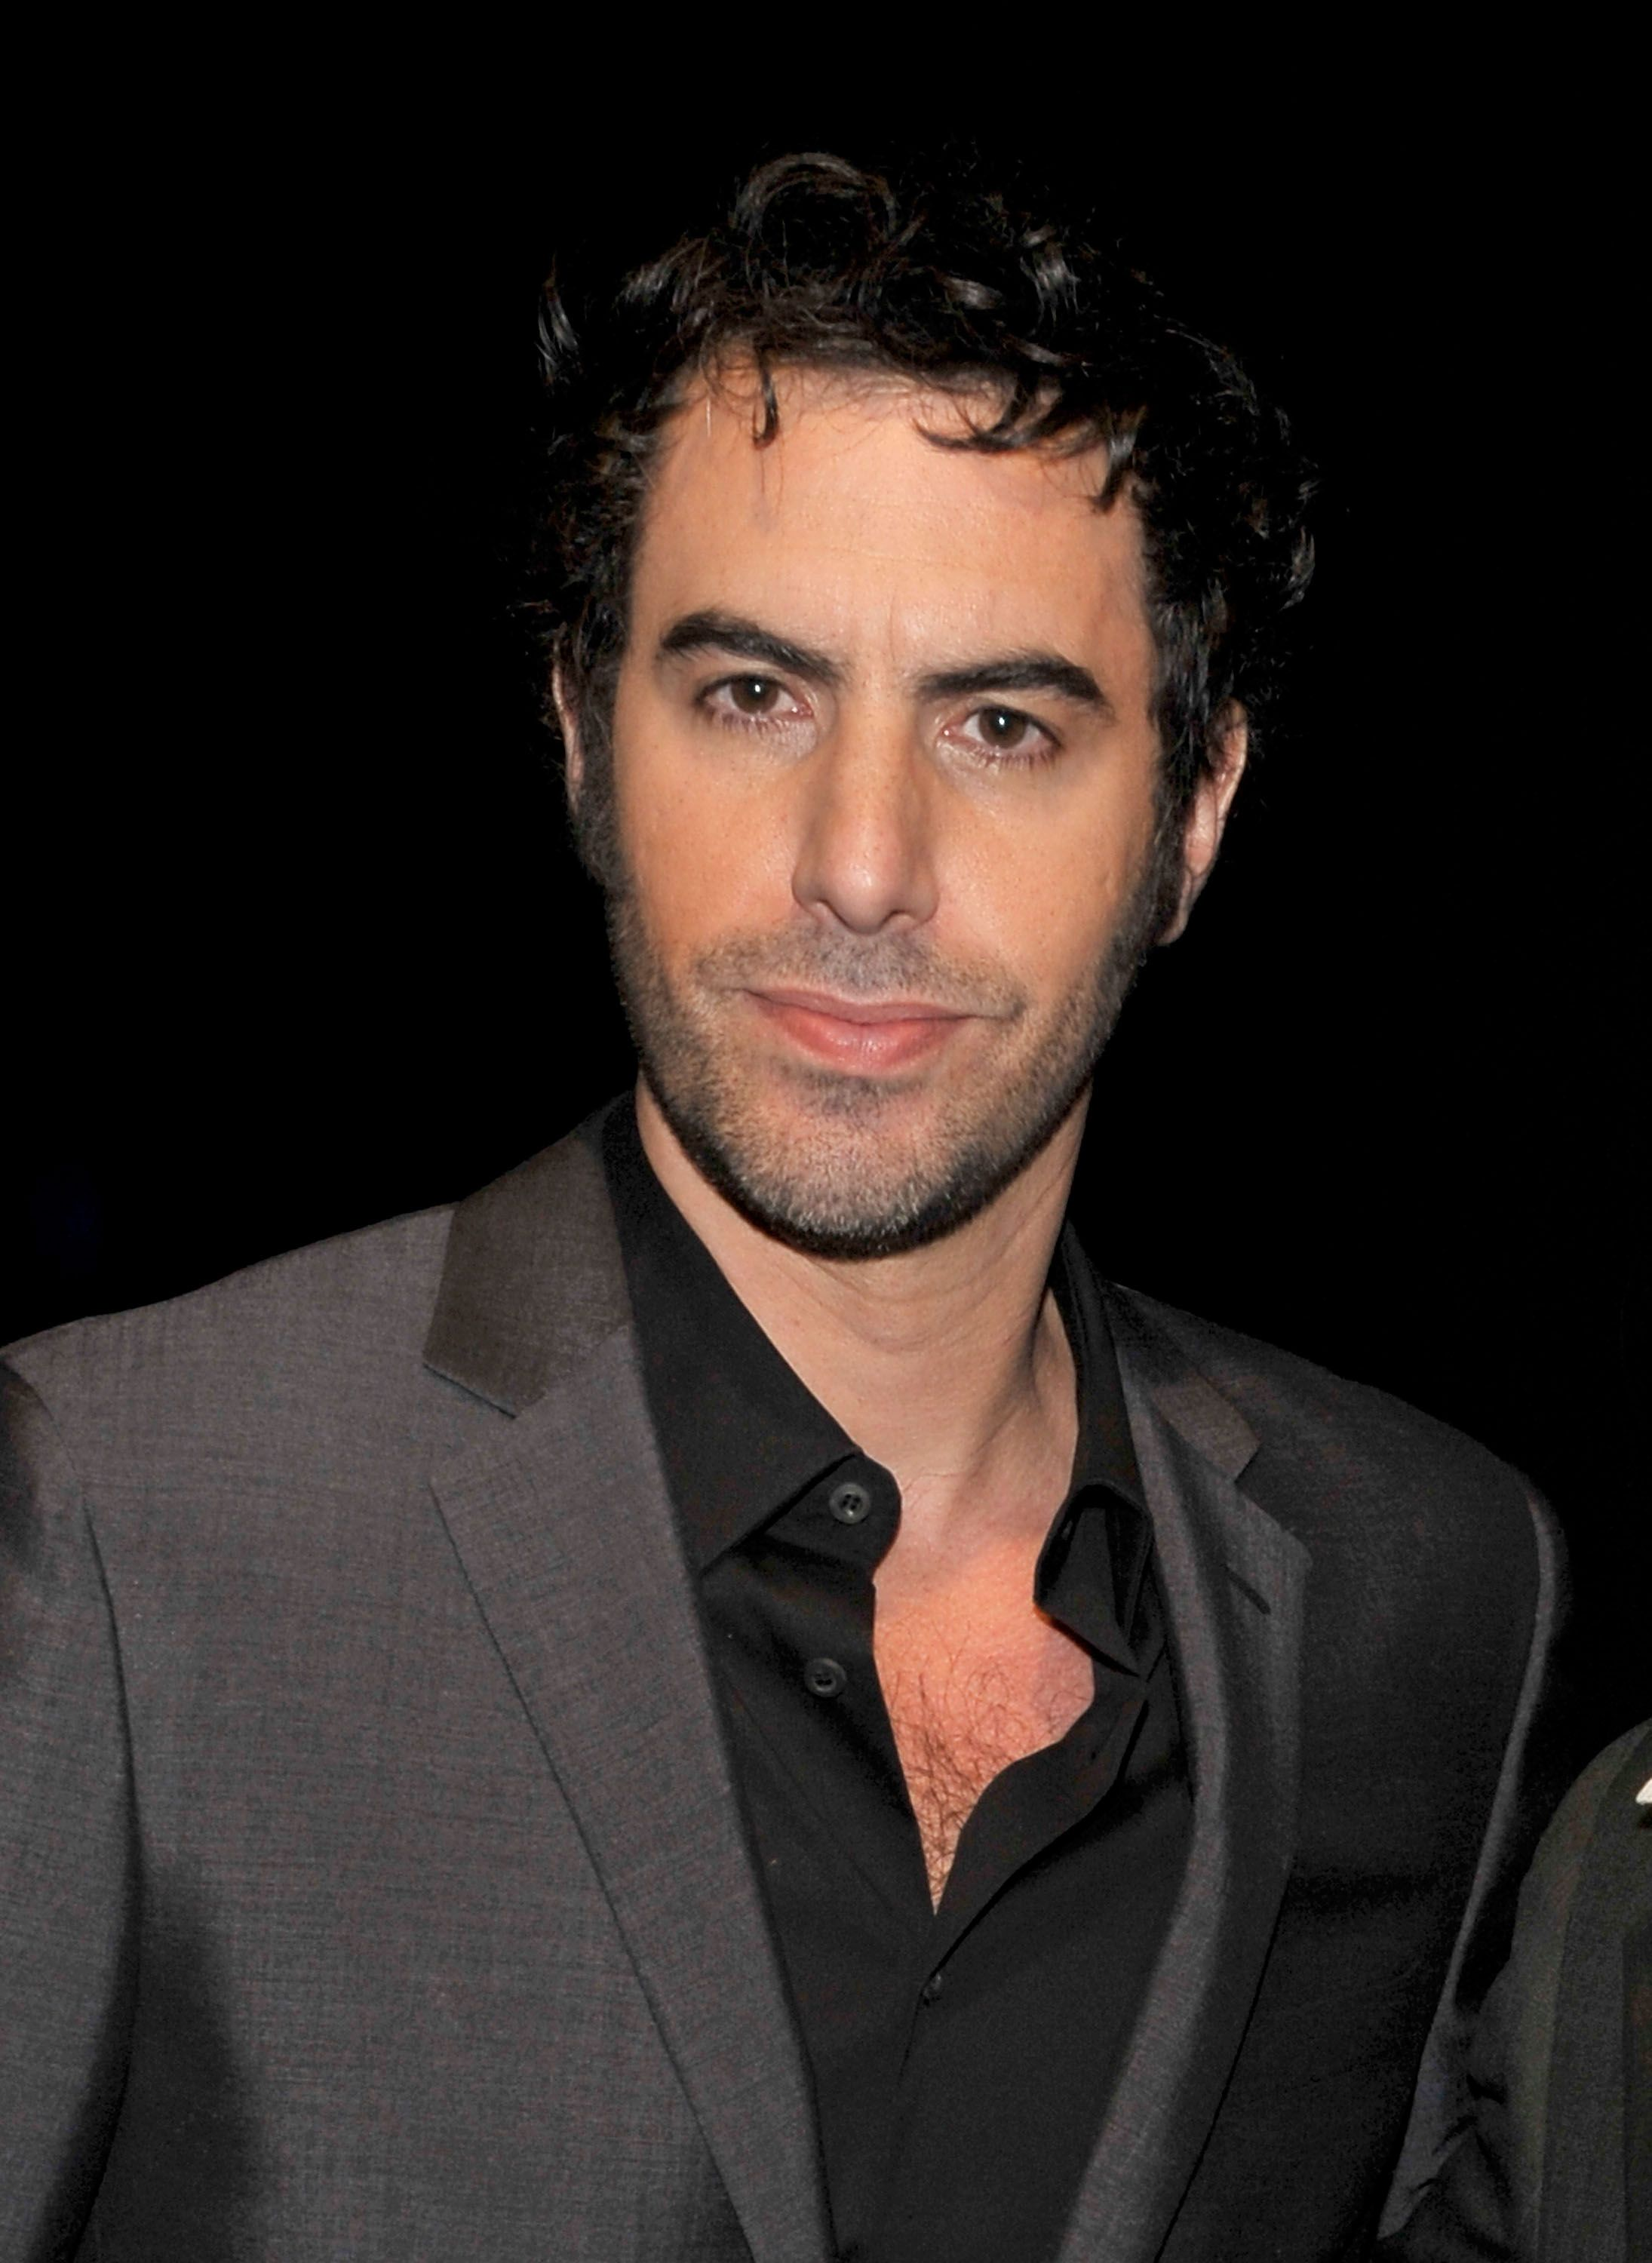 Sacha Baron Cohen. Underneath those ridiculous characters is a very handsome man.